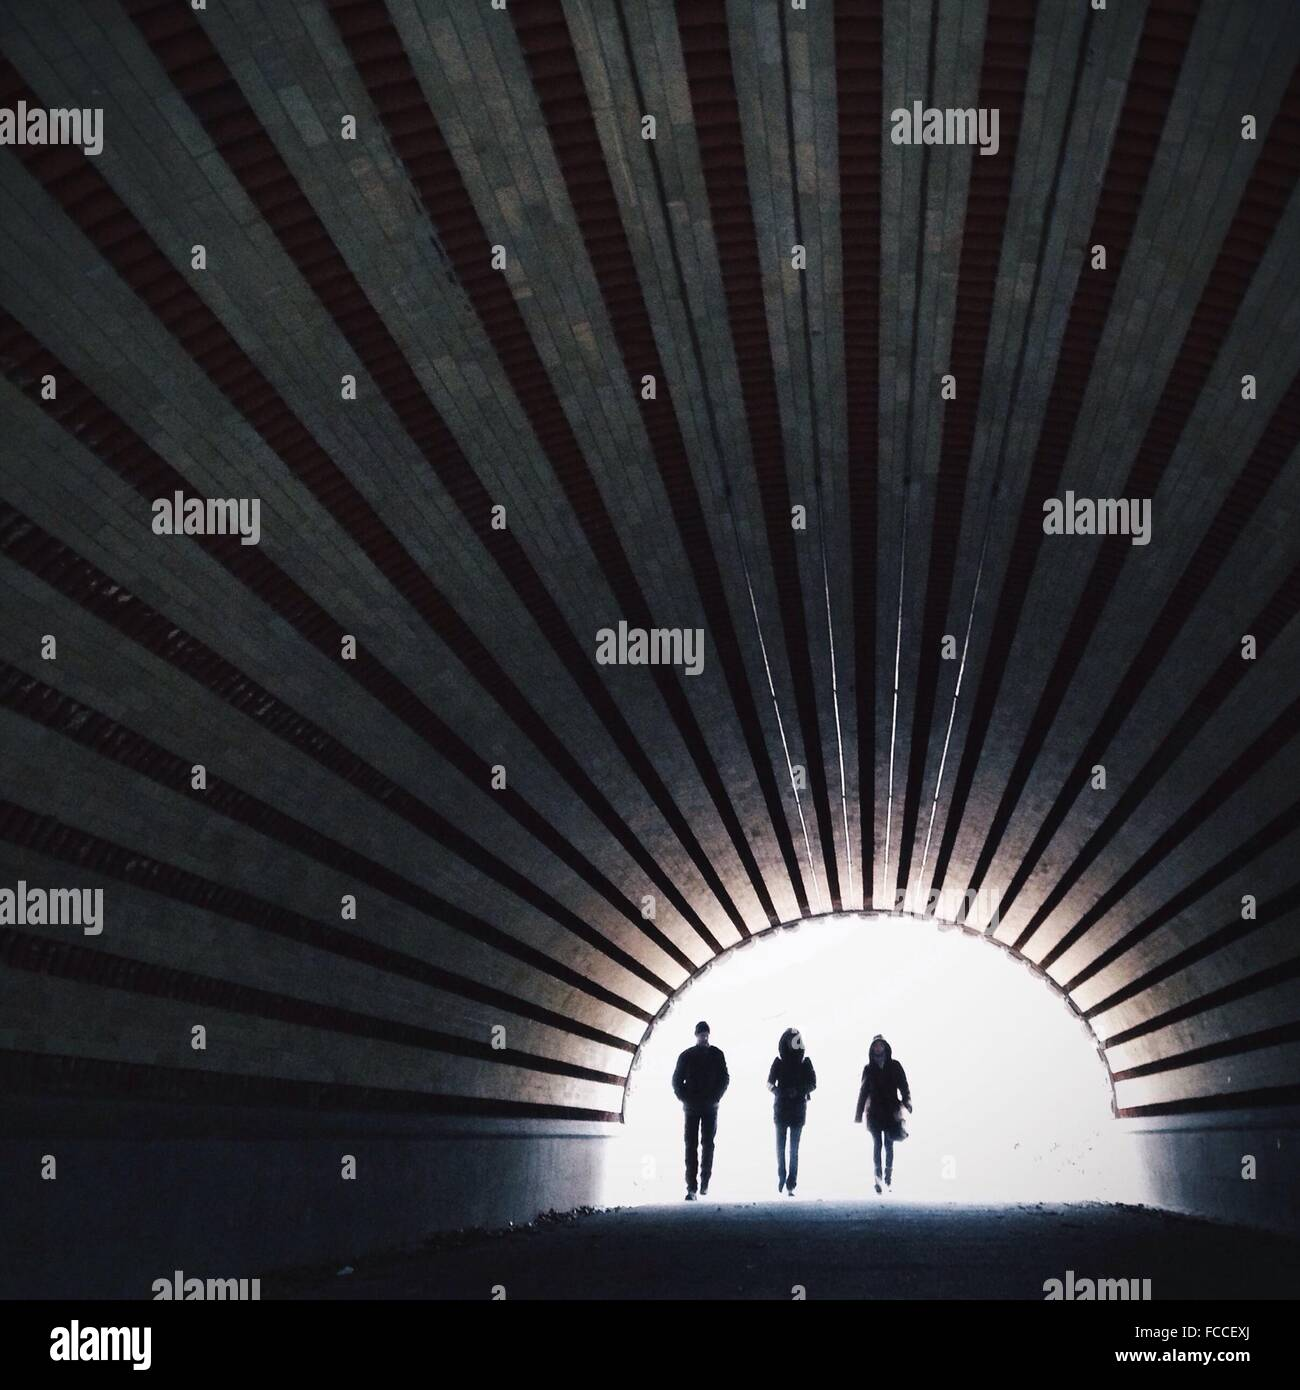 Full Length Of People Walking In Tunnel Stock Photo